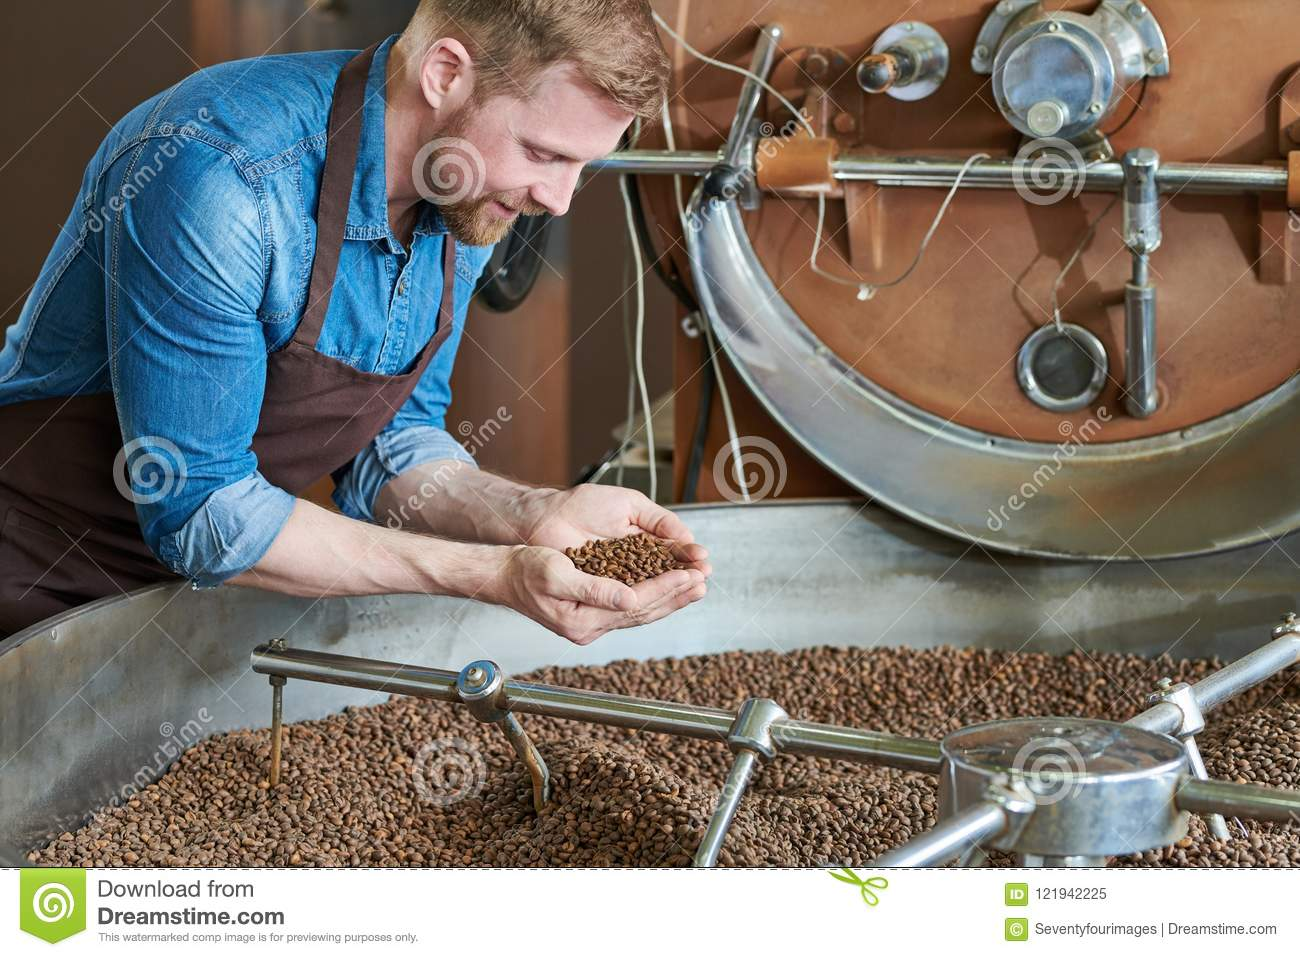 Coffee Roaster By Drum Machine Stock Image - Image of